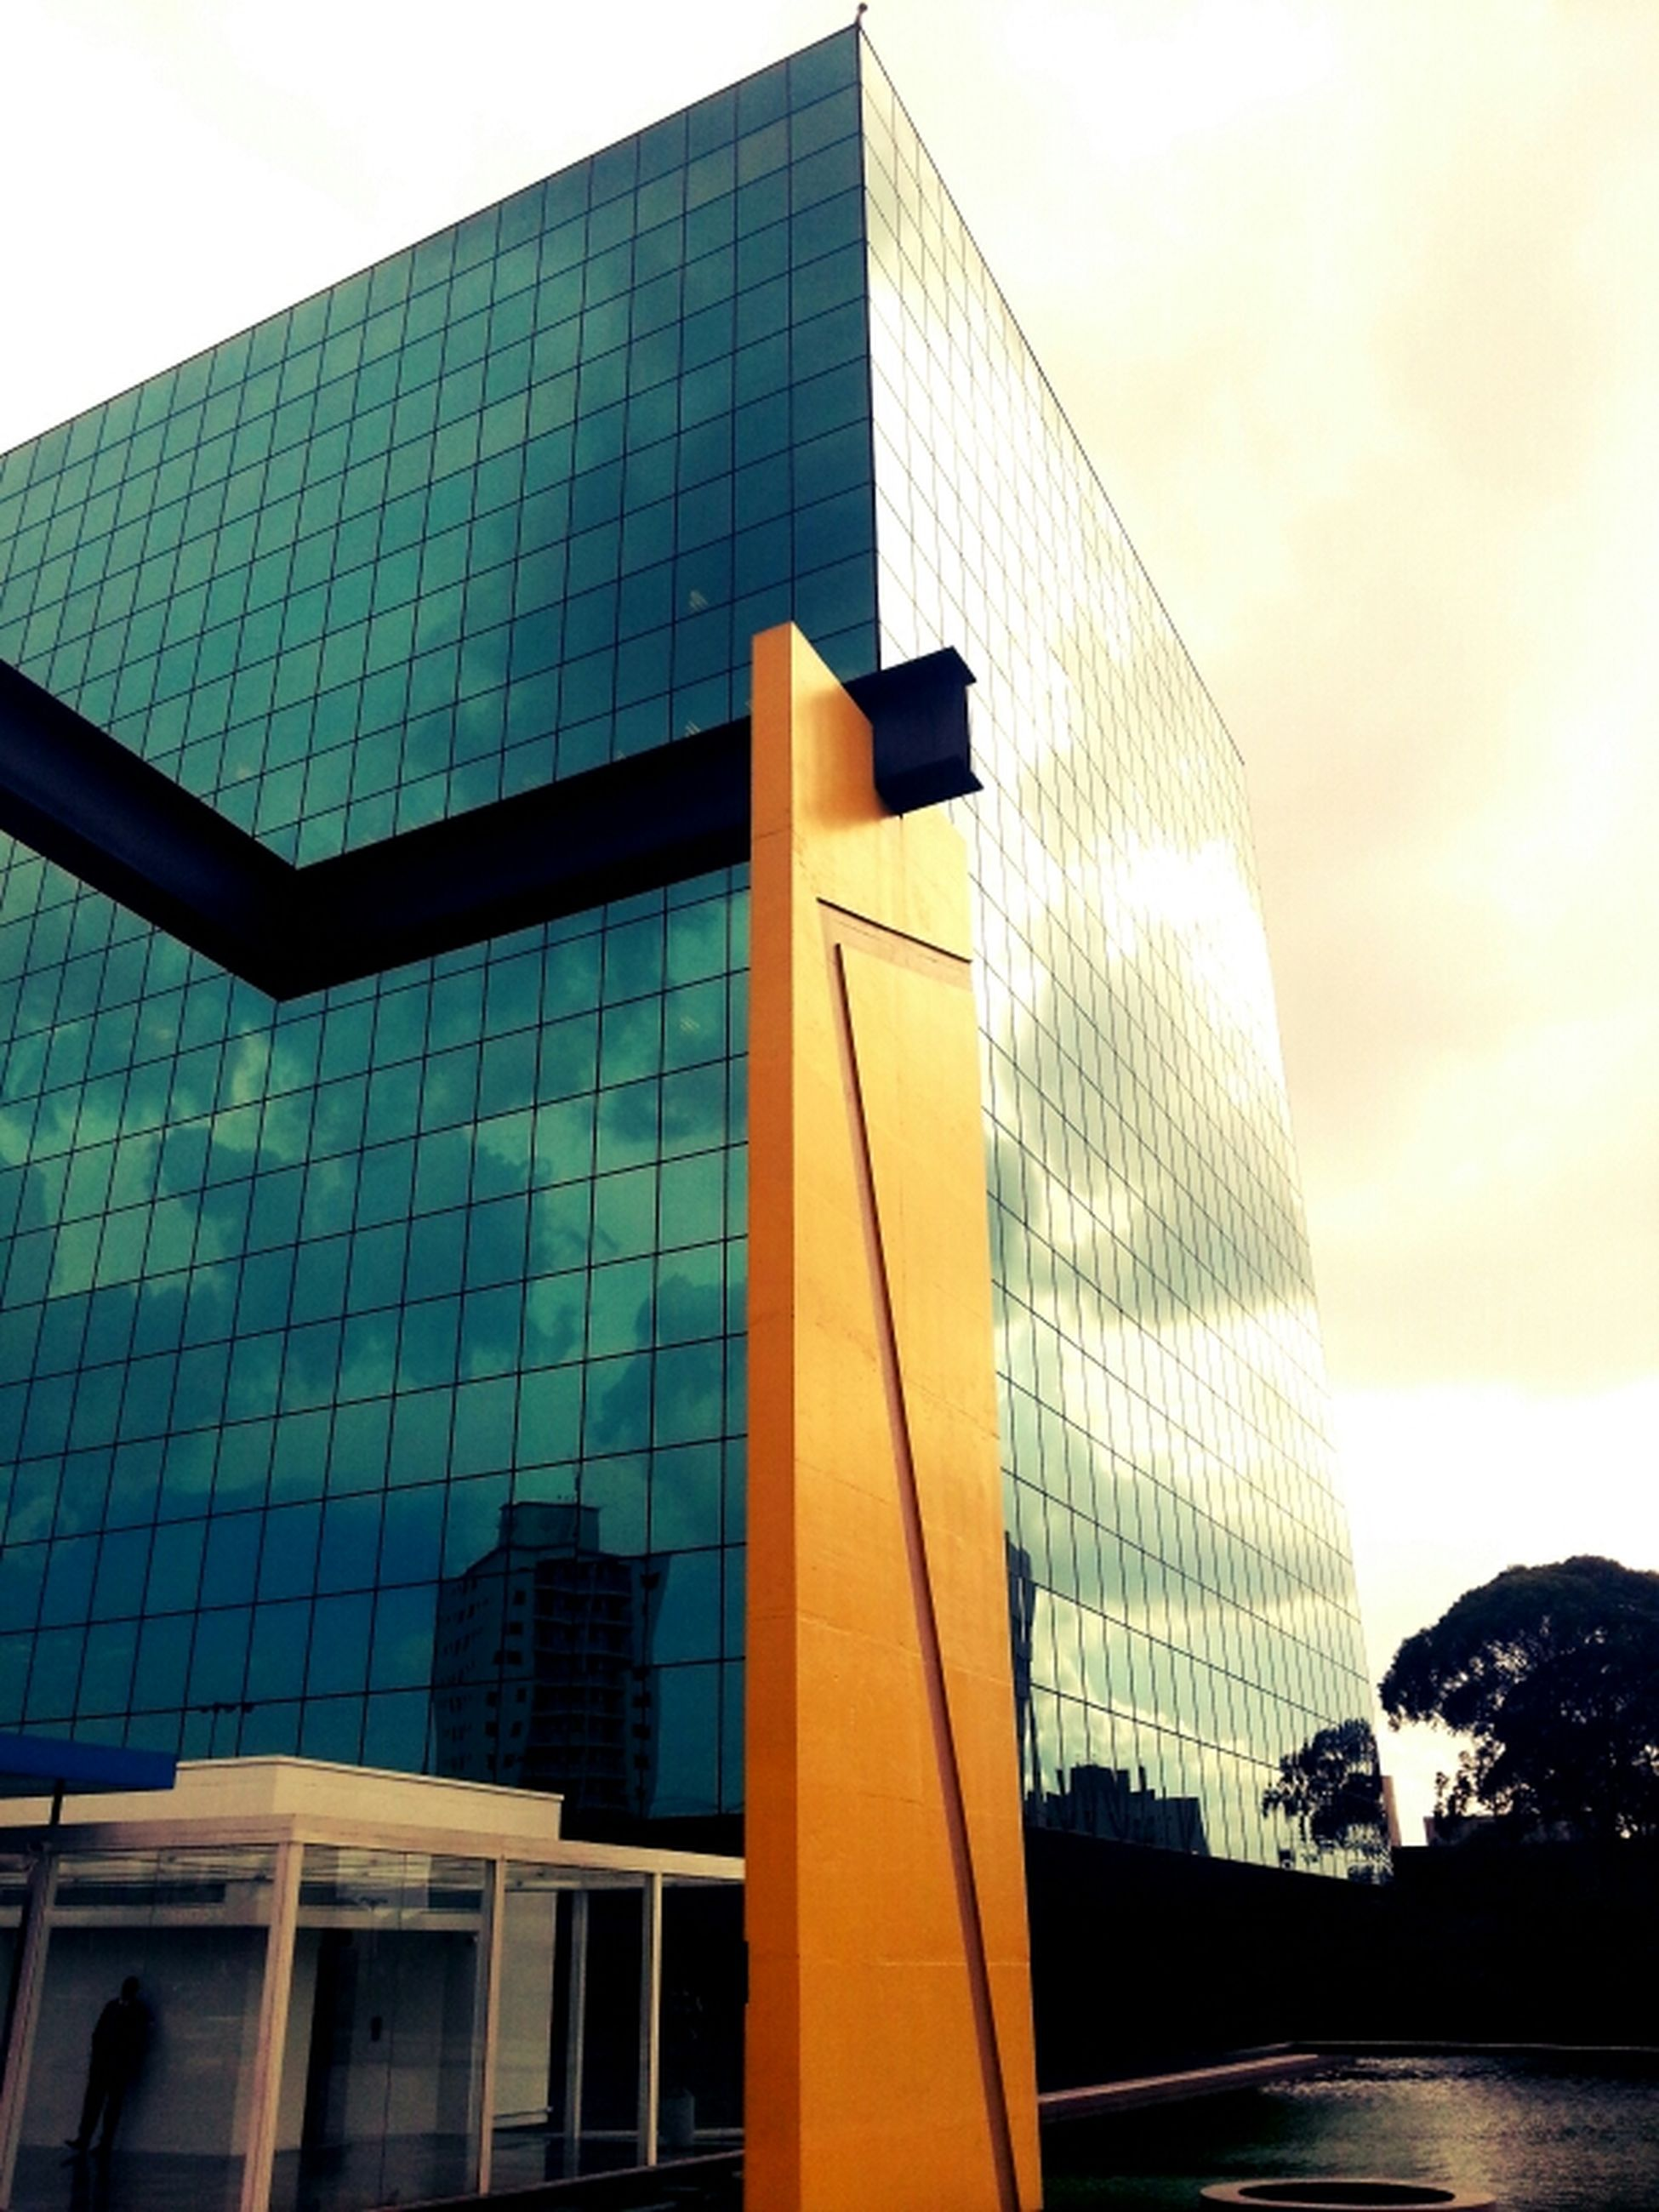 building exterior, architecture, built structure, skyscraper, modern, office building, city, tall - high, tower, low angle view, reflection, glass - material, sky, building, capital cities, tall, financial district, day, city life, outdoors